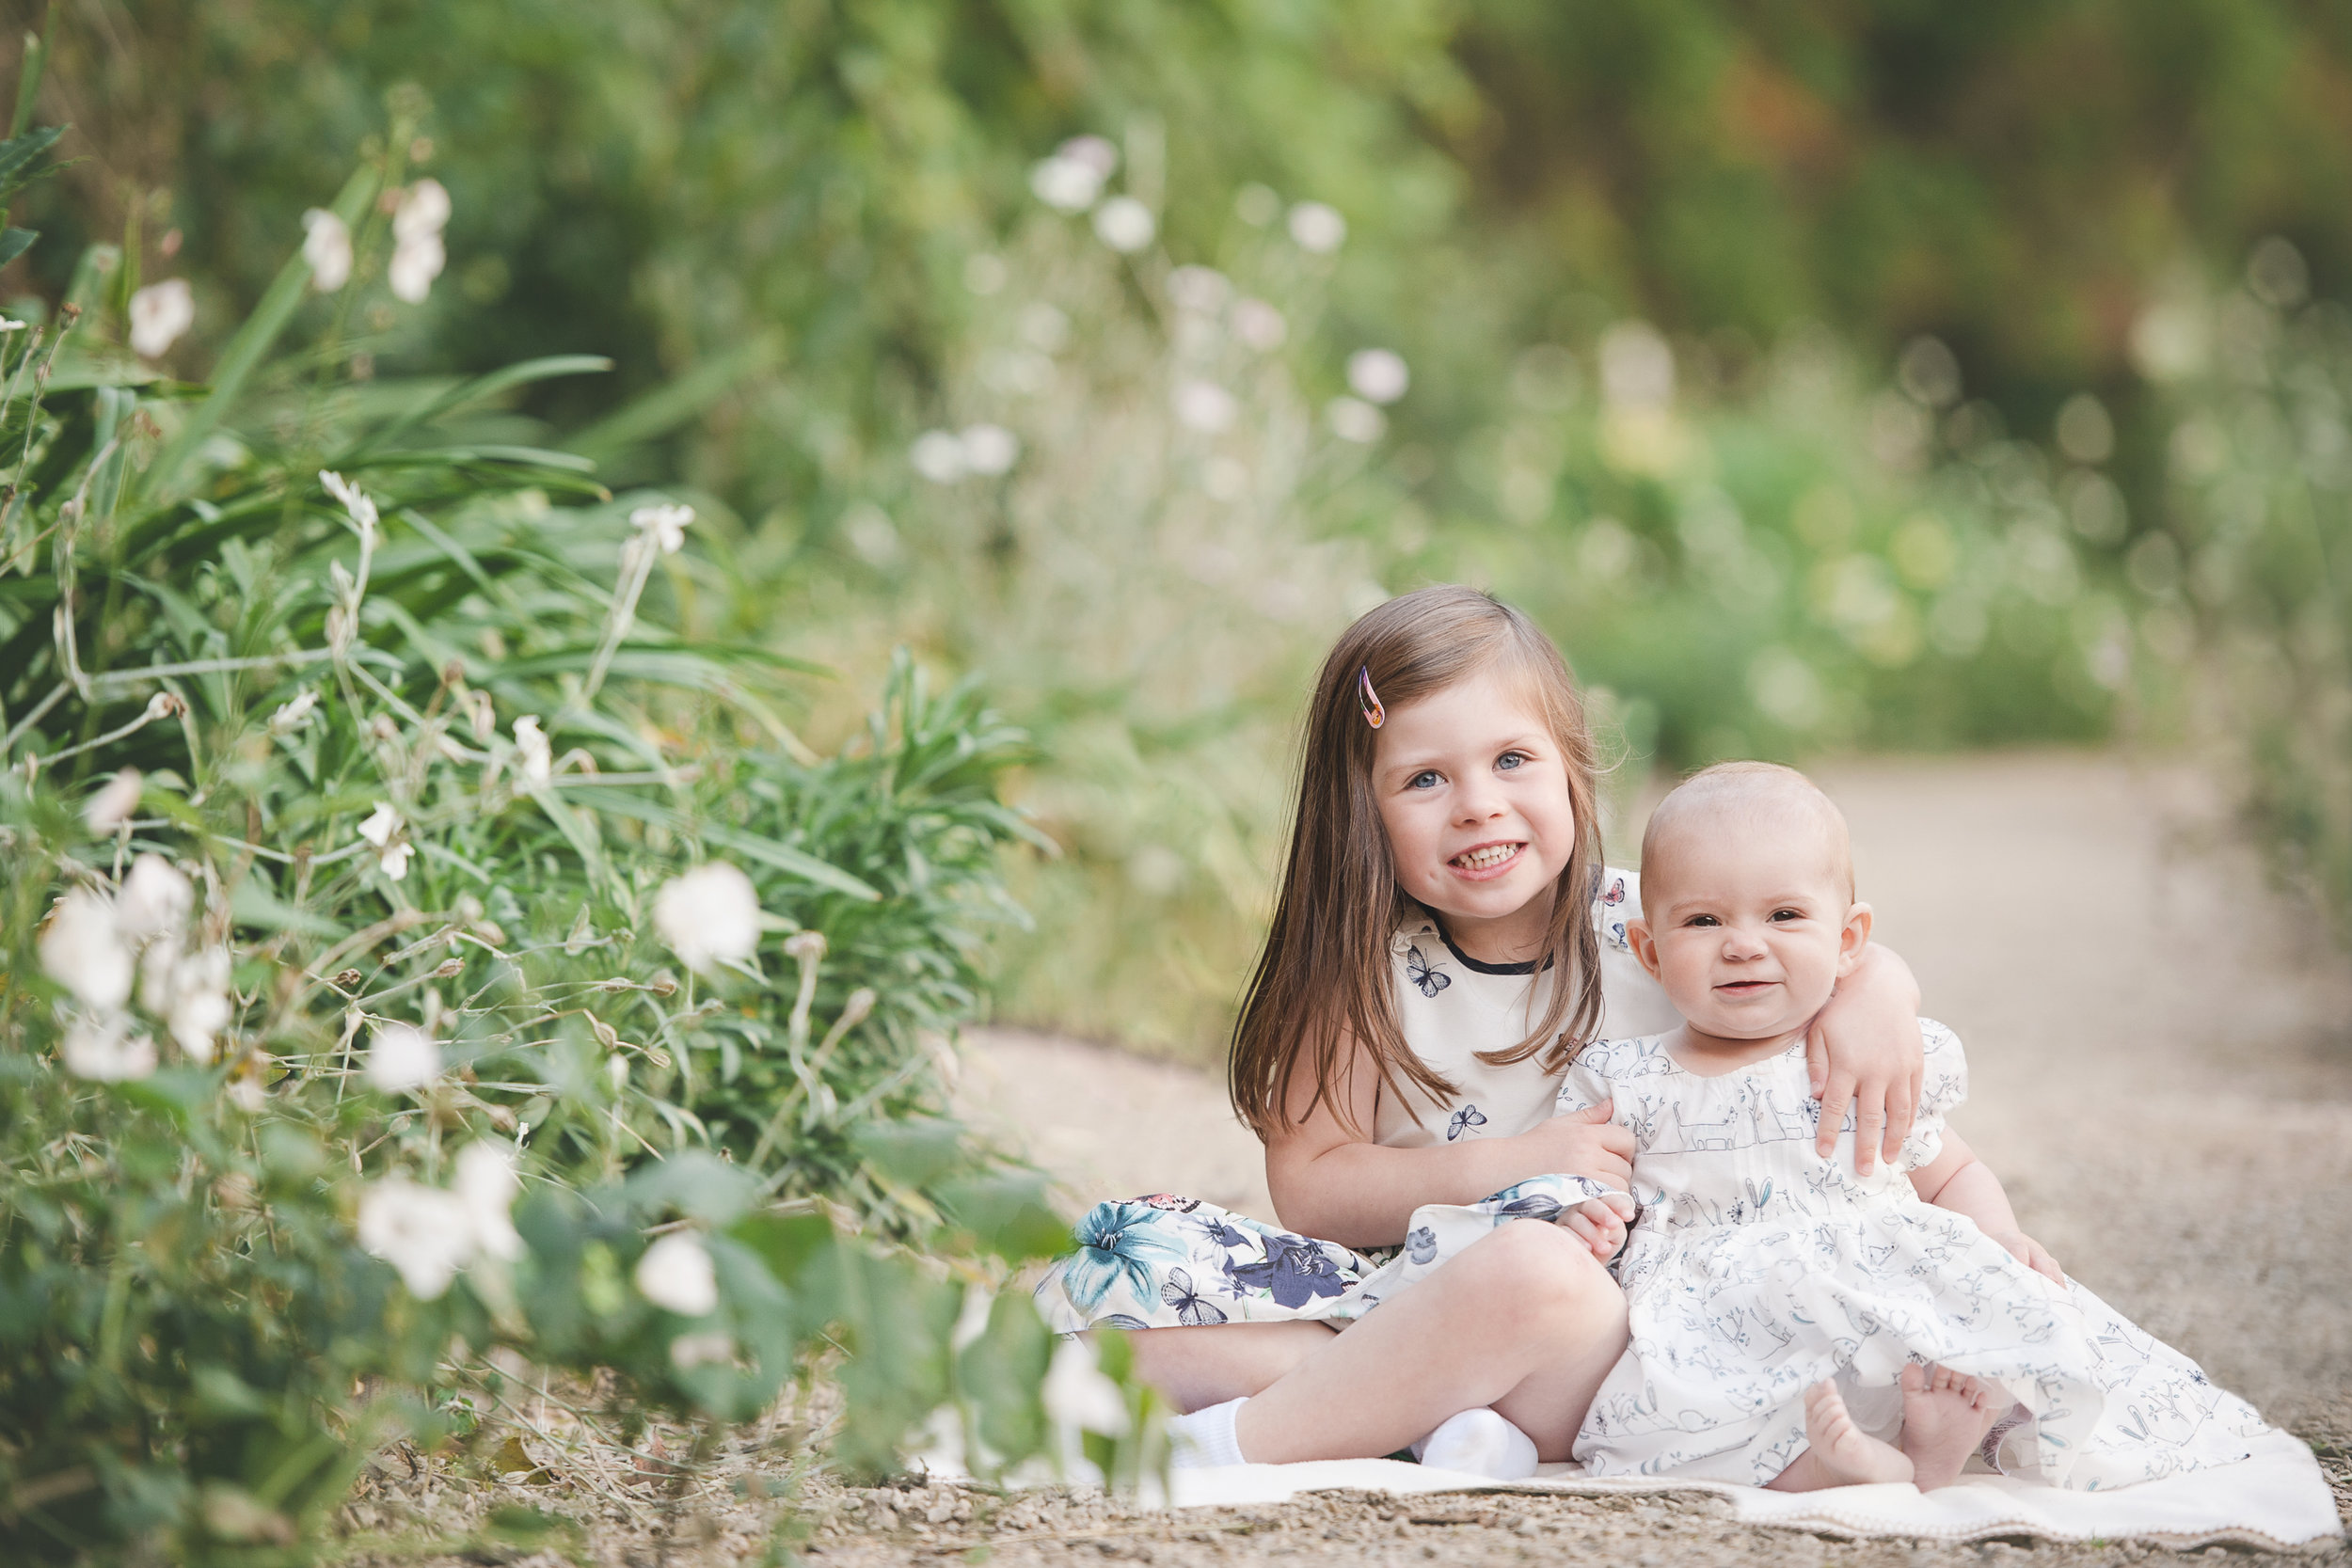 family photography cheshire showing siblings in spring outdoor photo shoot